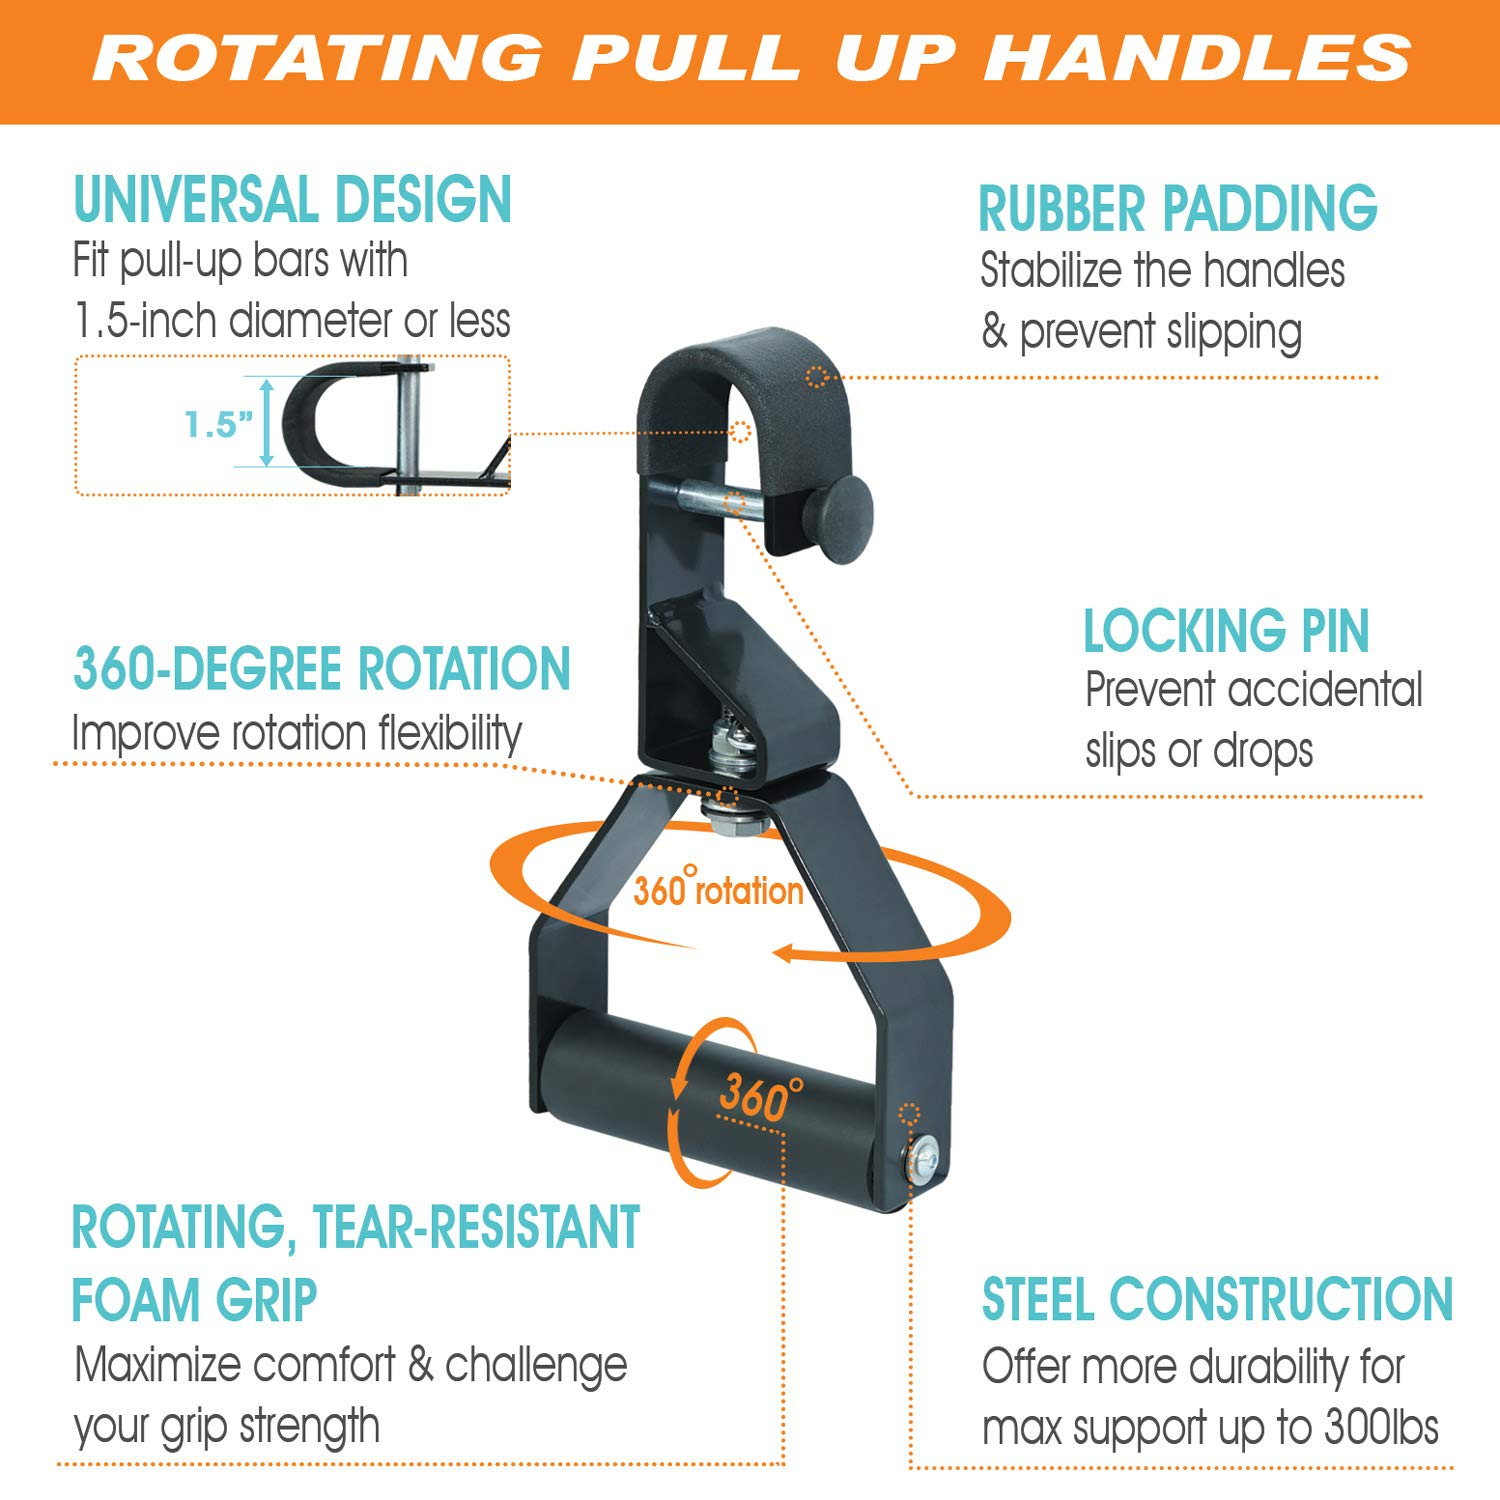 Pull-ups Chinning Bar Attachment Universal Fitting with Snap Hook Fitting by Gymnastics Rings Pull Up Handles With Hook DEMON PULL-UP Handles Gymnastics Pull-Ups Hanging Gym Straps//Handles for Men//Women AB Handles